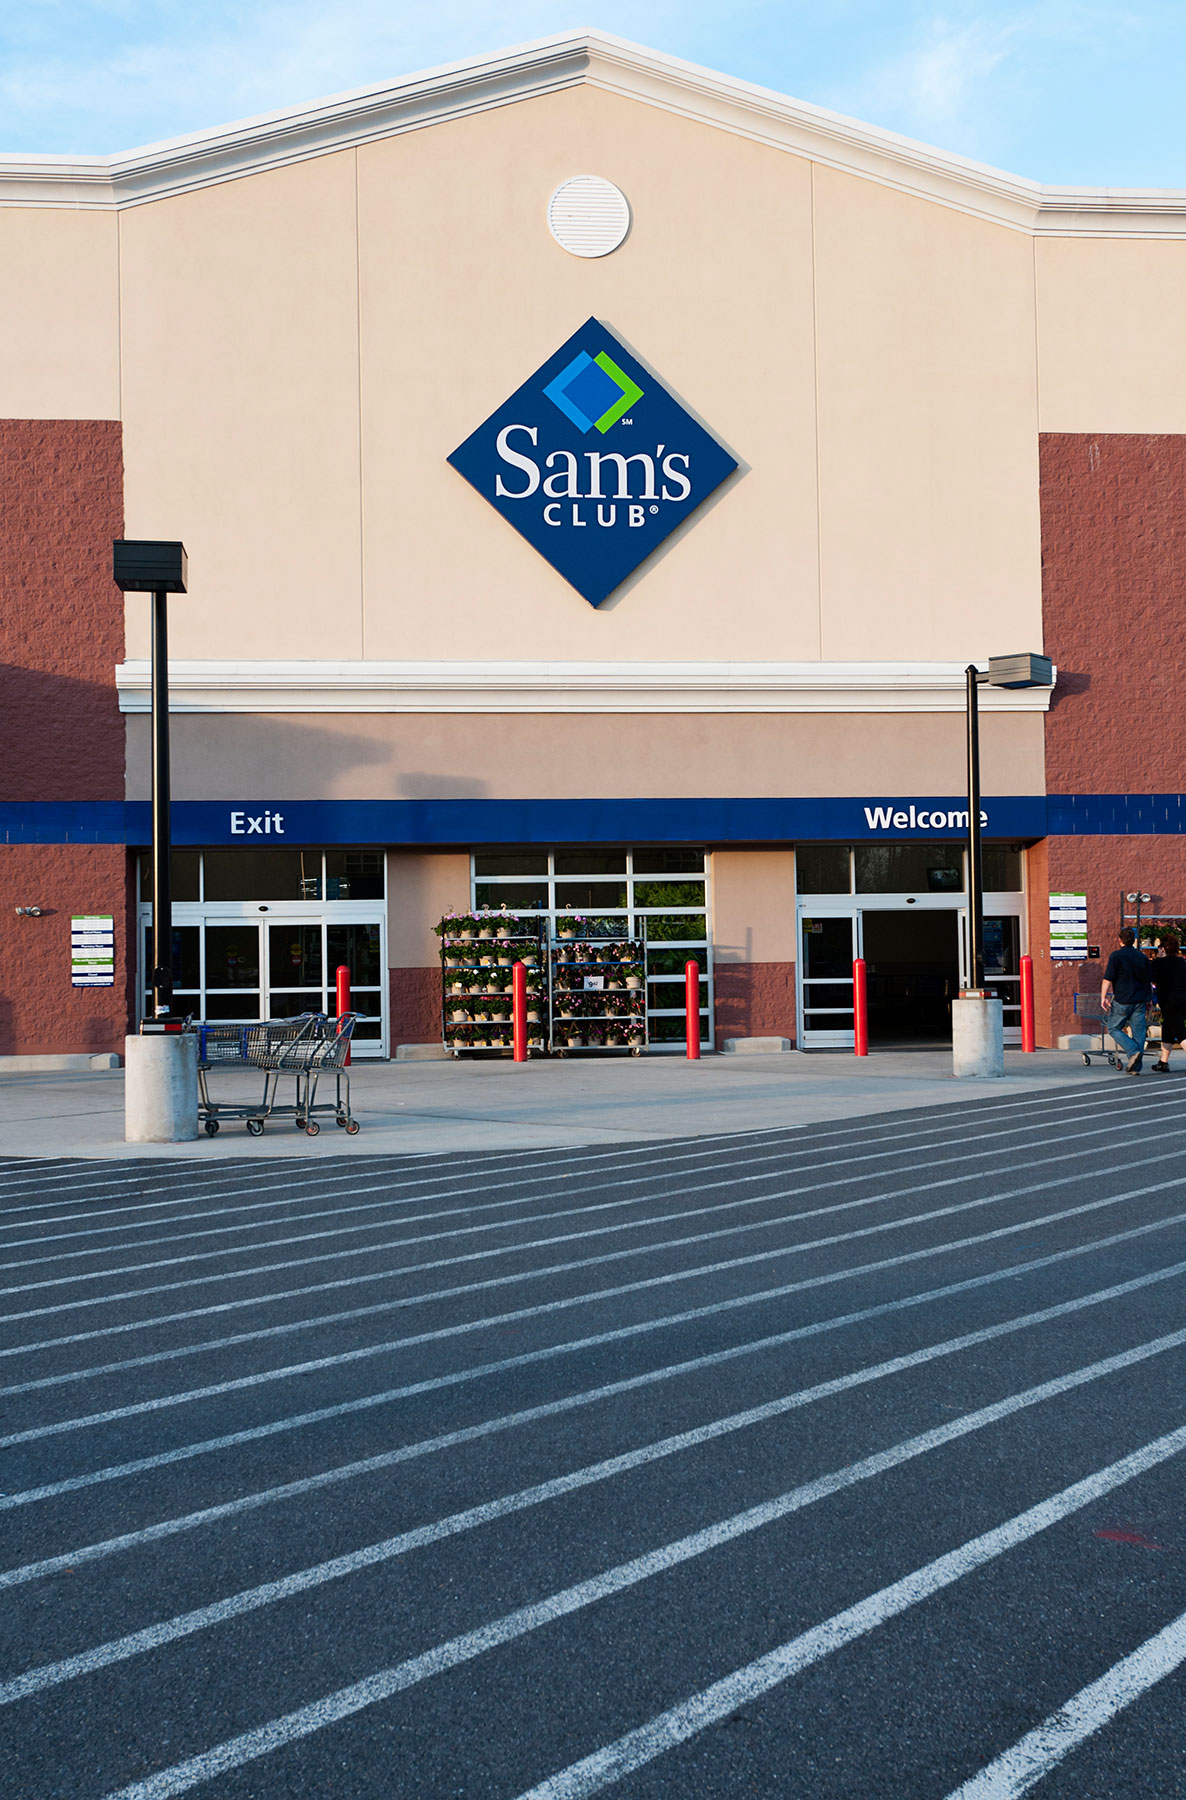 Sam's Club Abruptly Closes Dozens of Stores Across the Country